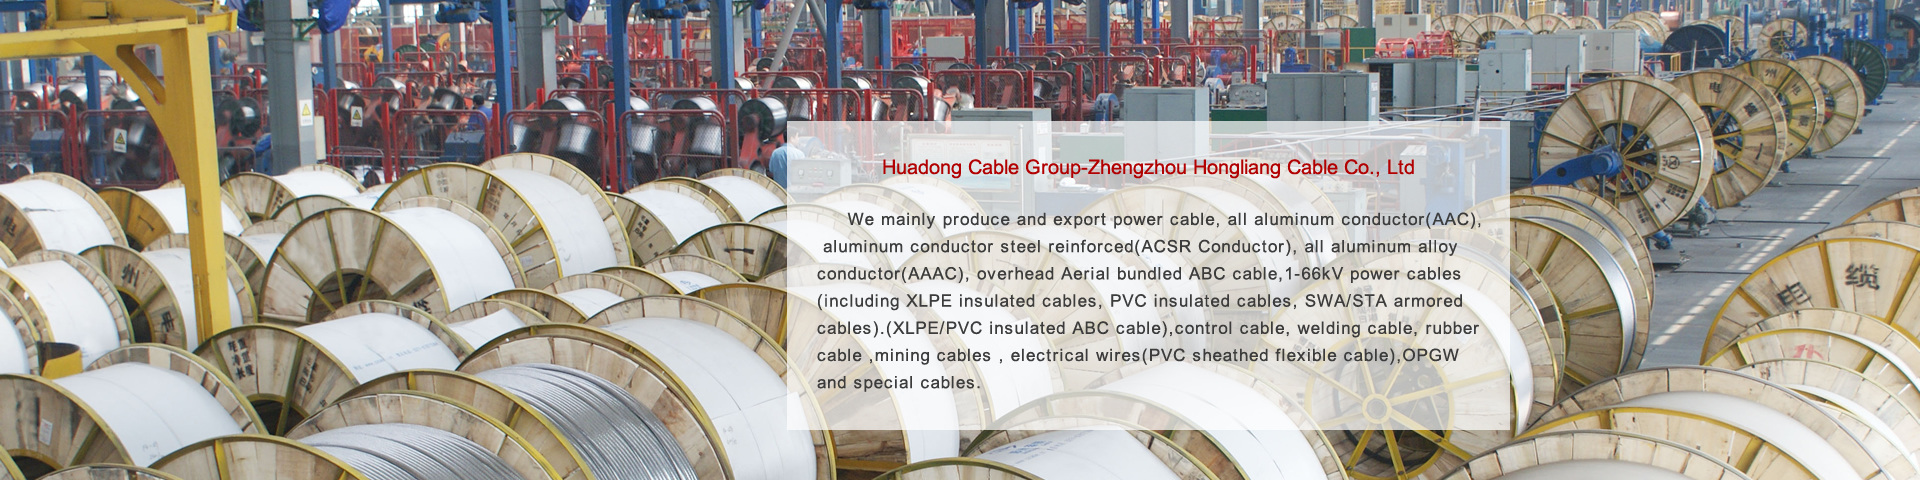 Huadong Cables Wires Group China Cable Factory Armored Wiring